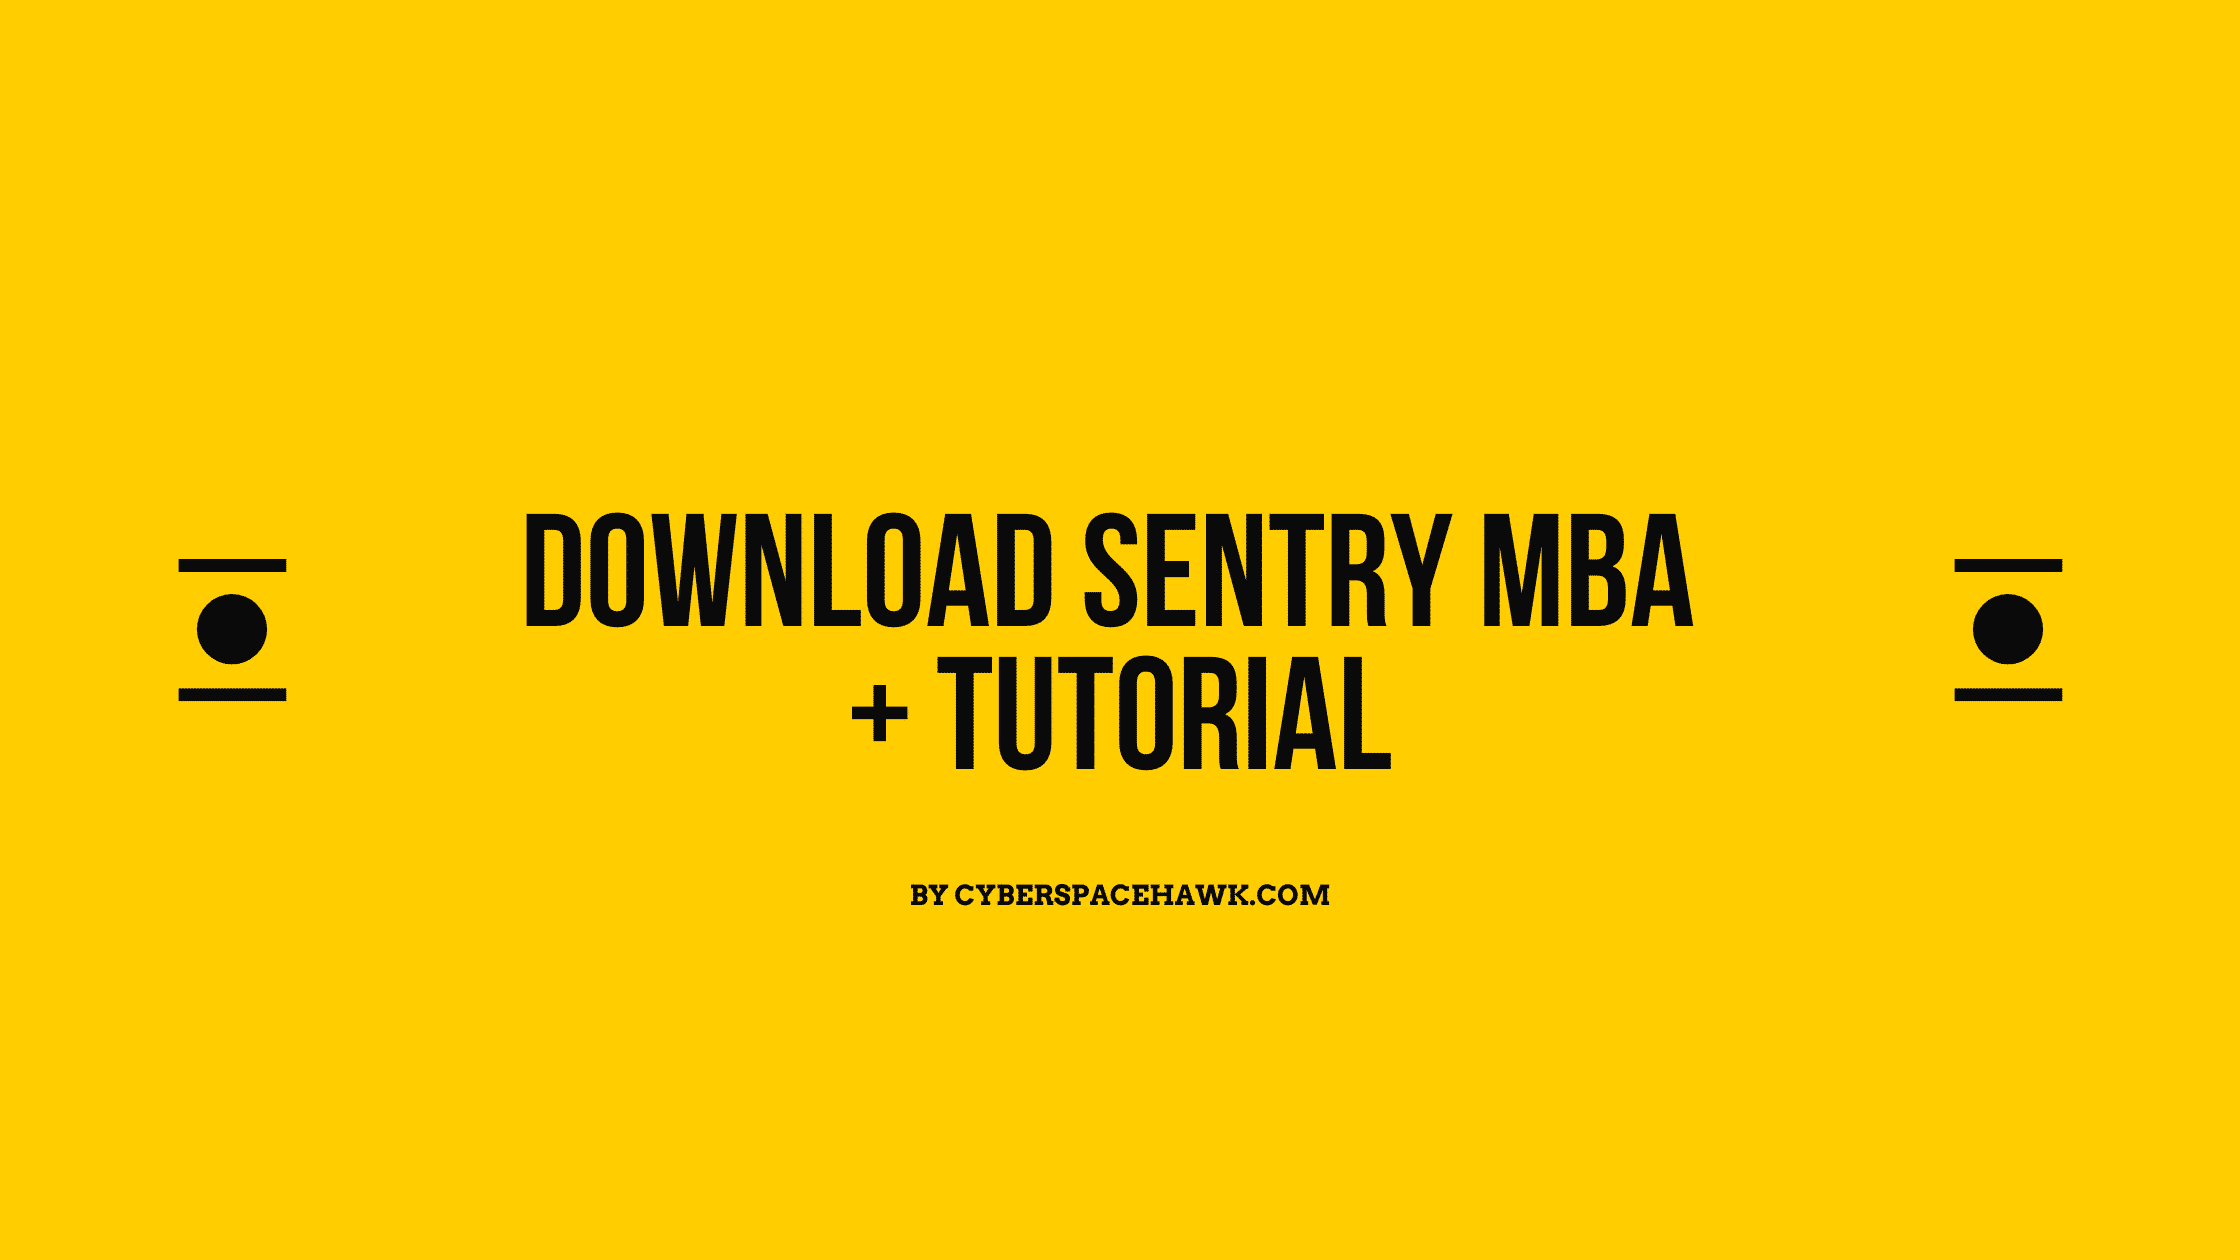 Sentry mba 1.5.0 download